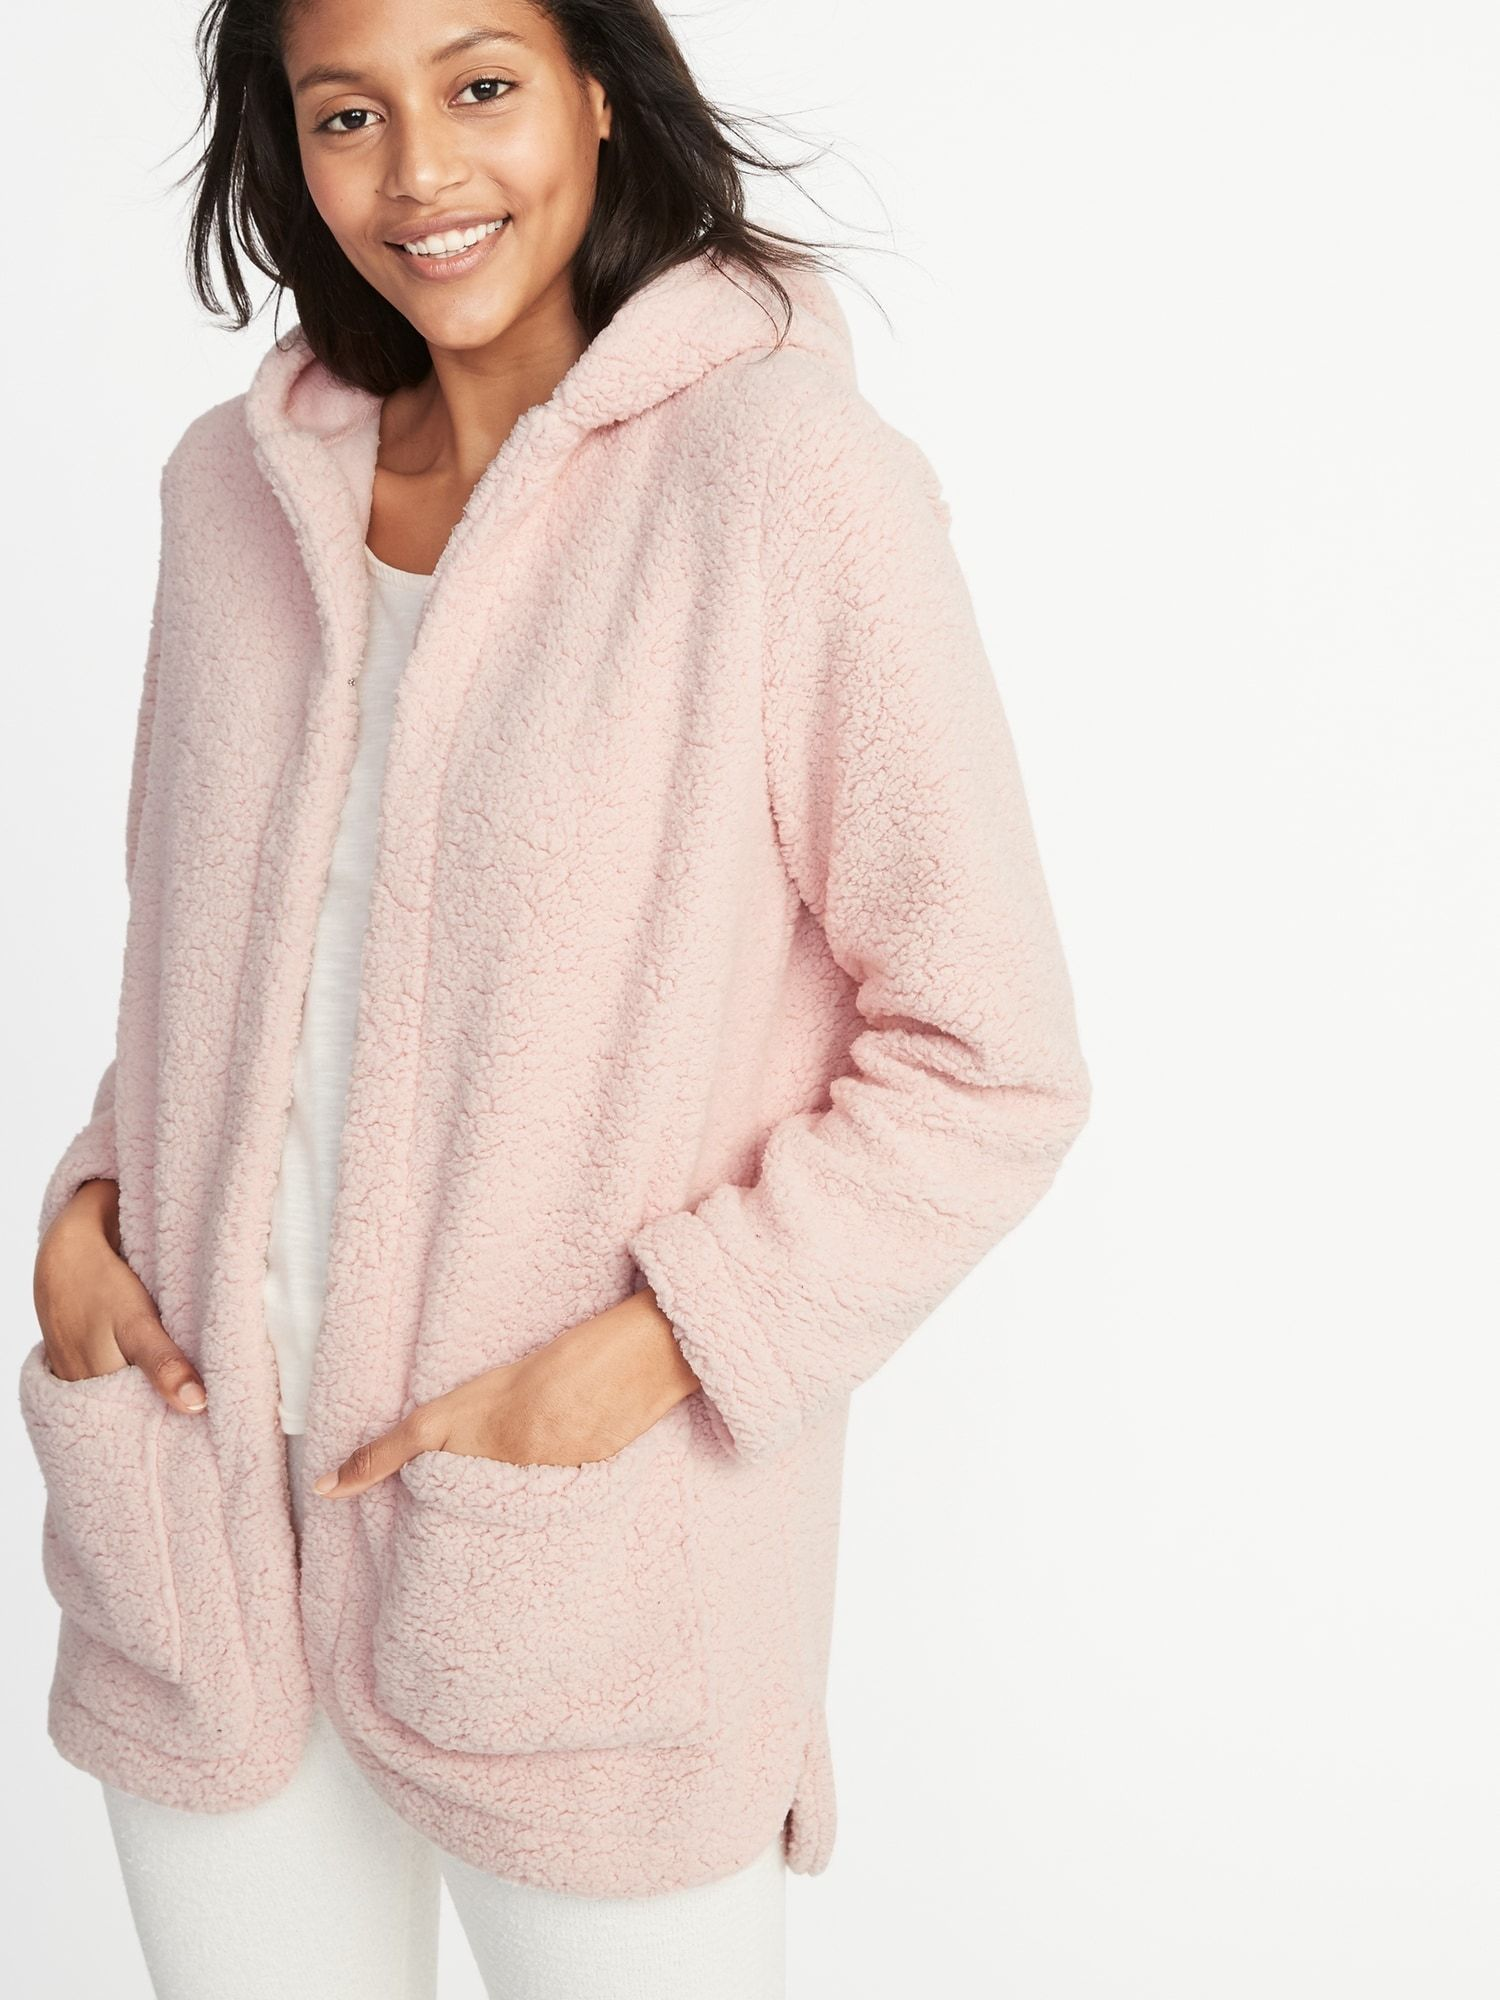 Hooded OpenFront Sherpa Sweater for Women Old Navy